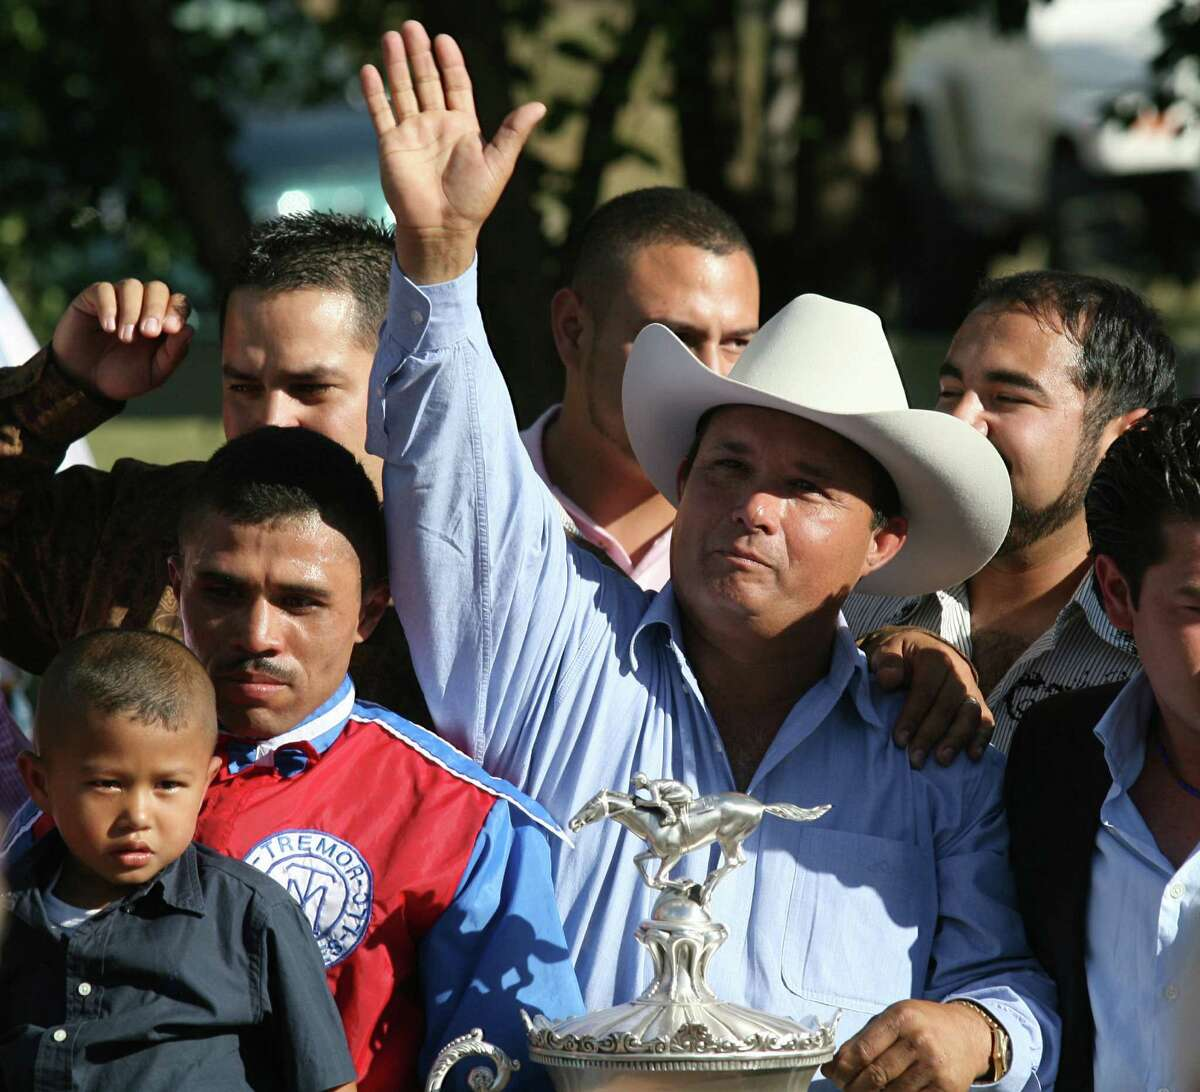 José Treviño Morales (with hand raised) is the main defendant in a trial involving laundering of Zetas cartel money in the U.S. horse-racing industry.